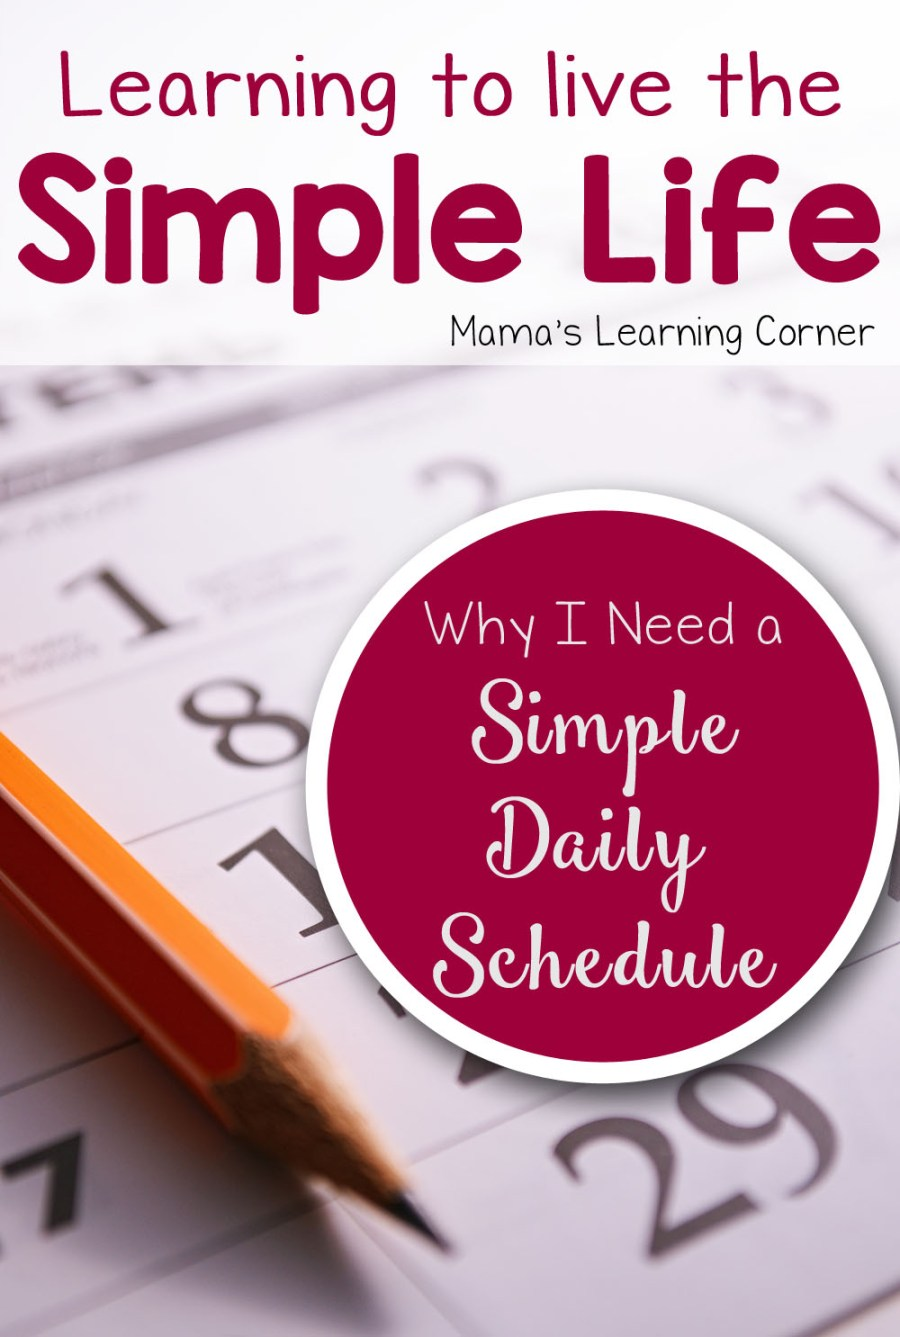 Living the Simple Life: Why I Need a Simple Schedule